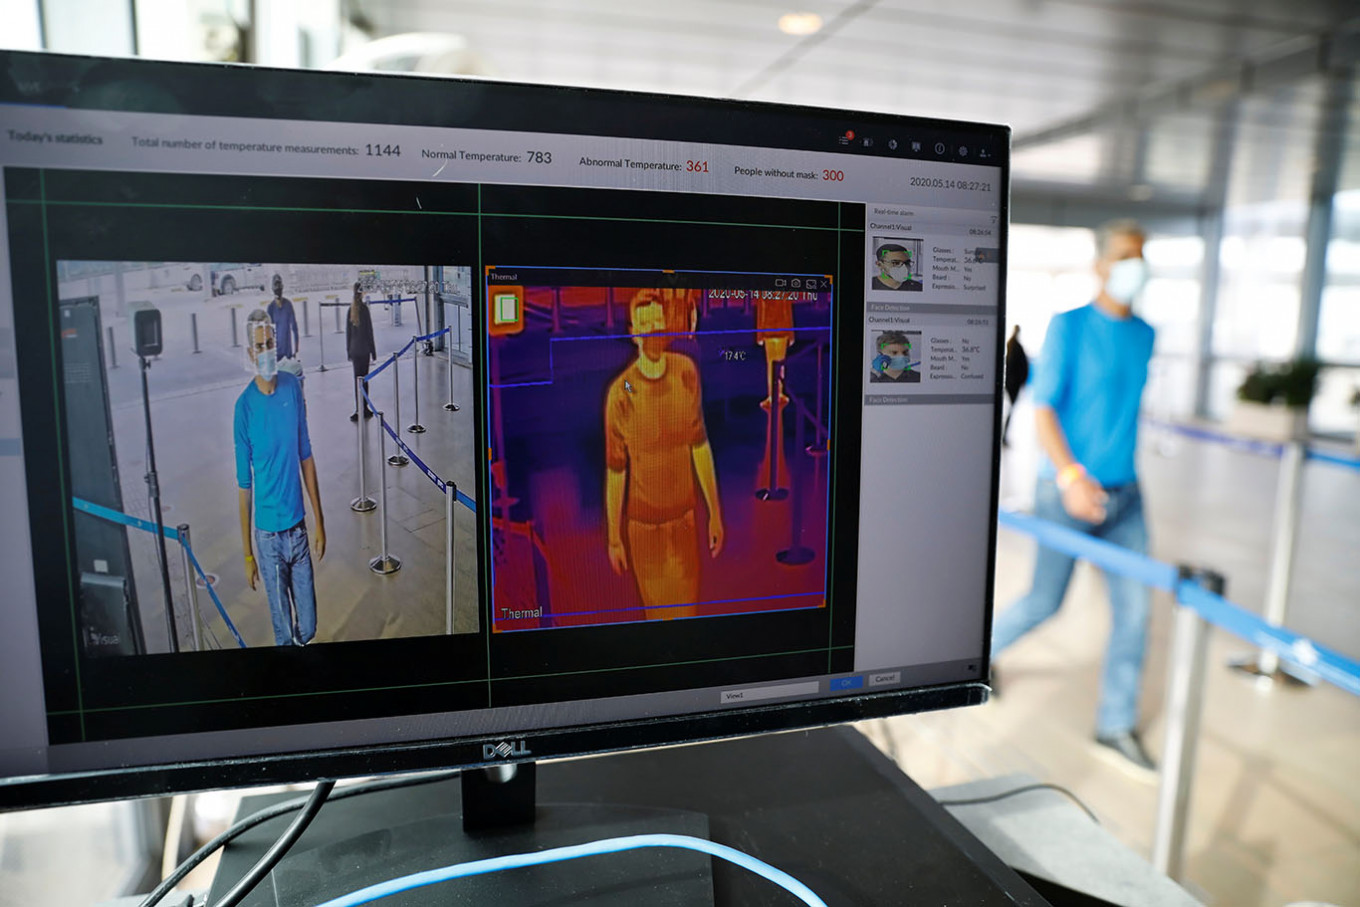 Are thermal cameras a magic bullet for COVID-19 fever detection? There's not enough evidence to know